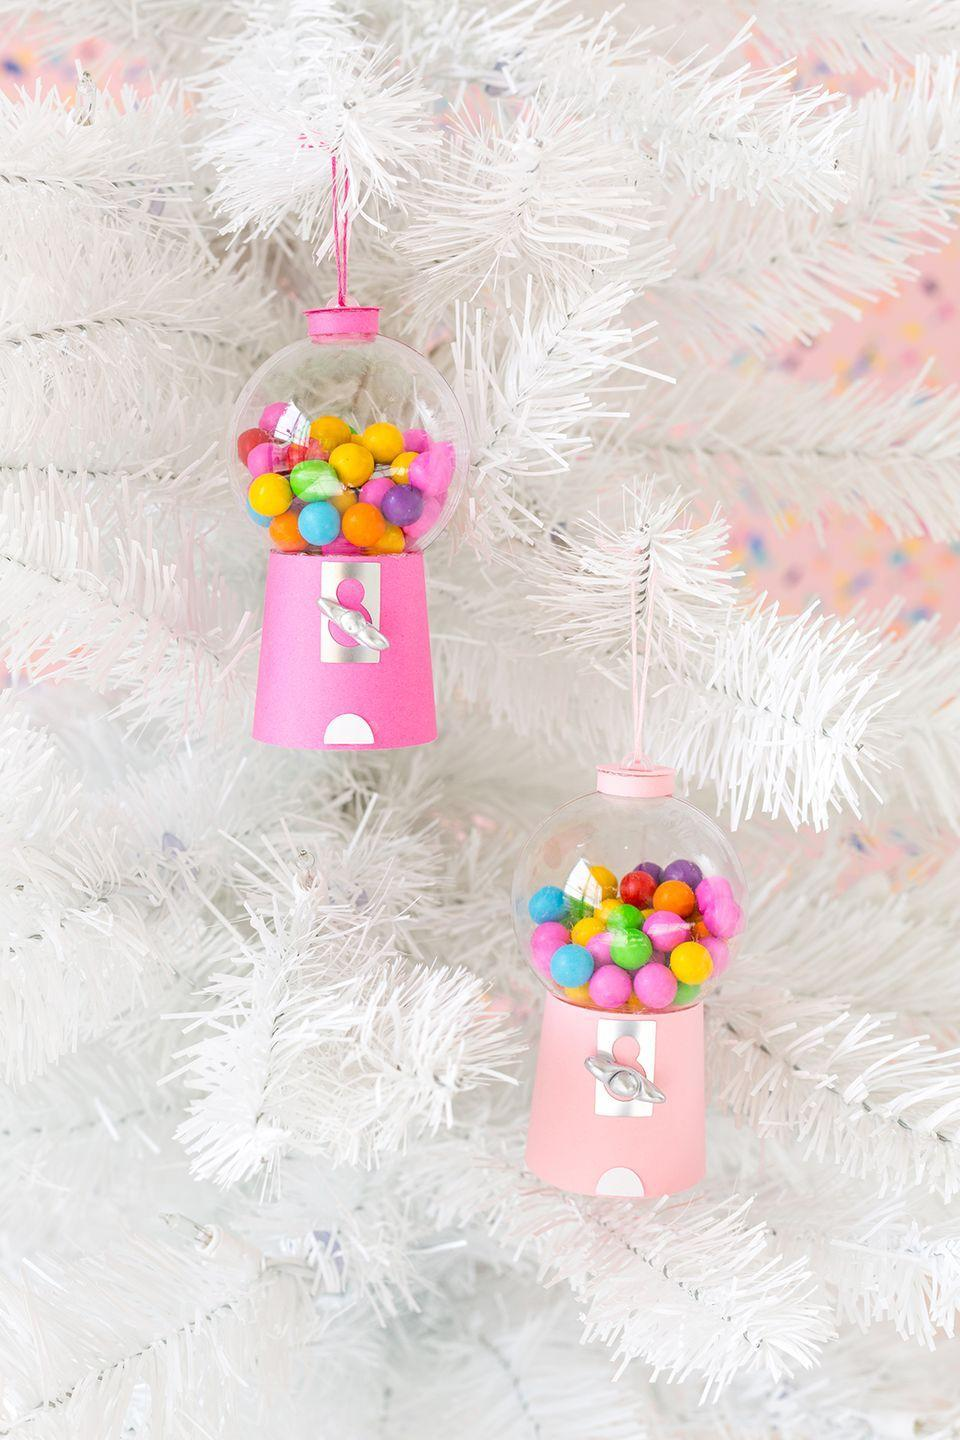 "<p>Turn a clear, plain ornament into a brilliantly vivid mini gumball machine, complete with tiny candies (or pom poms if you prefer). People will be amazed that you made these cute replicas!</p><p><strong>Get the tutorial at <a href=""http://www.awwsam.com/2017/11/diy-gumball-machine-ornaments.html"" rel=""nofollow noopener"" target=""_blank"" data-ylk=""slk:Aww Sam"" class=""link rapid-noclick-resp"">Aww Sam</a>.</strong></p><p><strong><a class=""link rapid-noclick-resp"" href=""https://www.amazon.com/3-Pack-Darice-140mm-Plastic-Ornament/dp/B01F6SXVEC/ref=sr_1_1_sspa?tag=syn-yahoo-20&ascsubtag=%5Bartid%7C10050.g.1070%5Bsrc%7Cyahoo-us"" rel=""nofollow noopener"" target=""_blank"" data-ylk=""slk:SHOP CLEAR BALL ORNAMENTS"">SHOP CLEAR BALL ORNAMENTS</a><br></strong></p>"